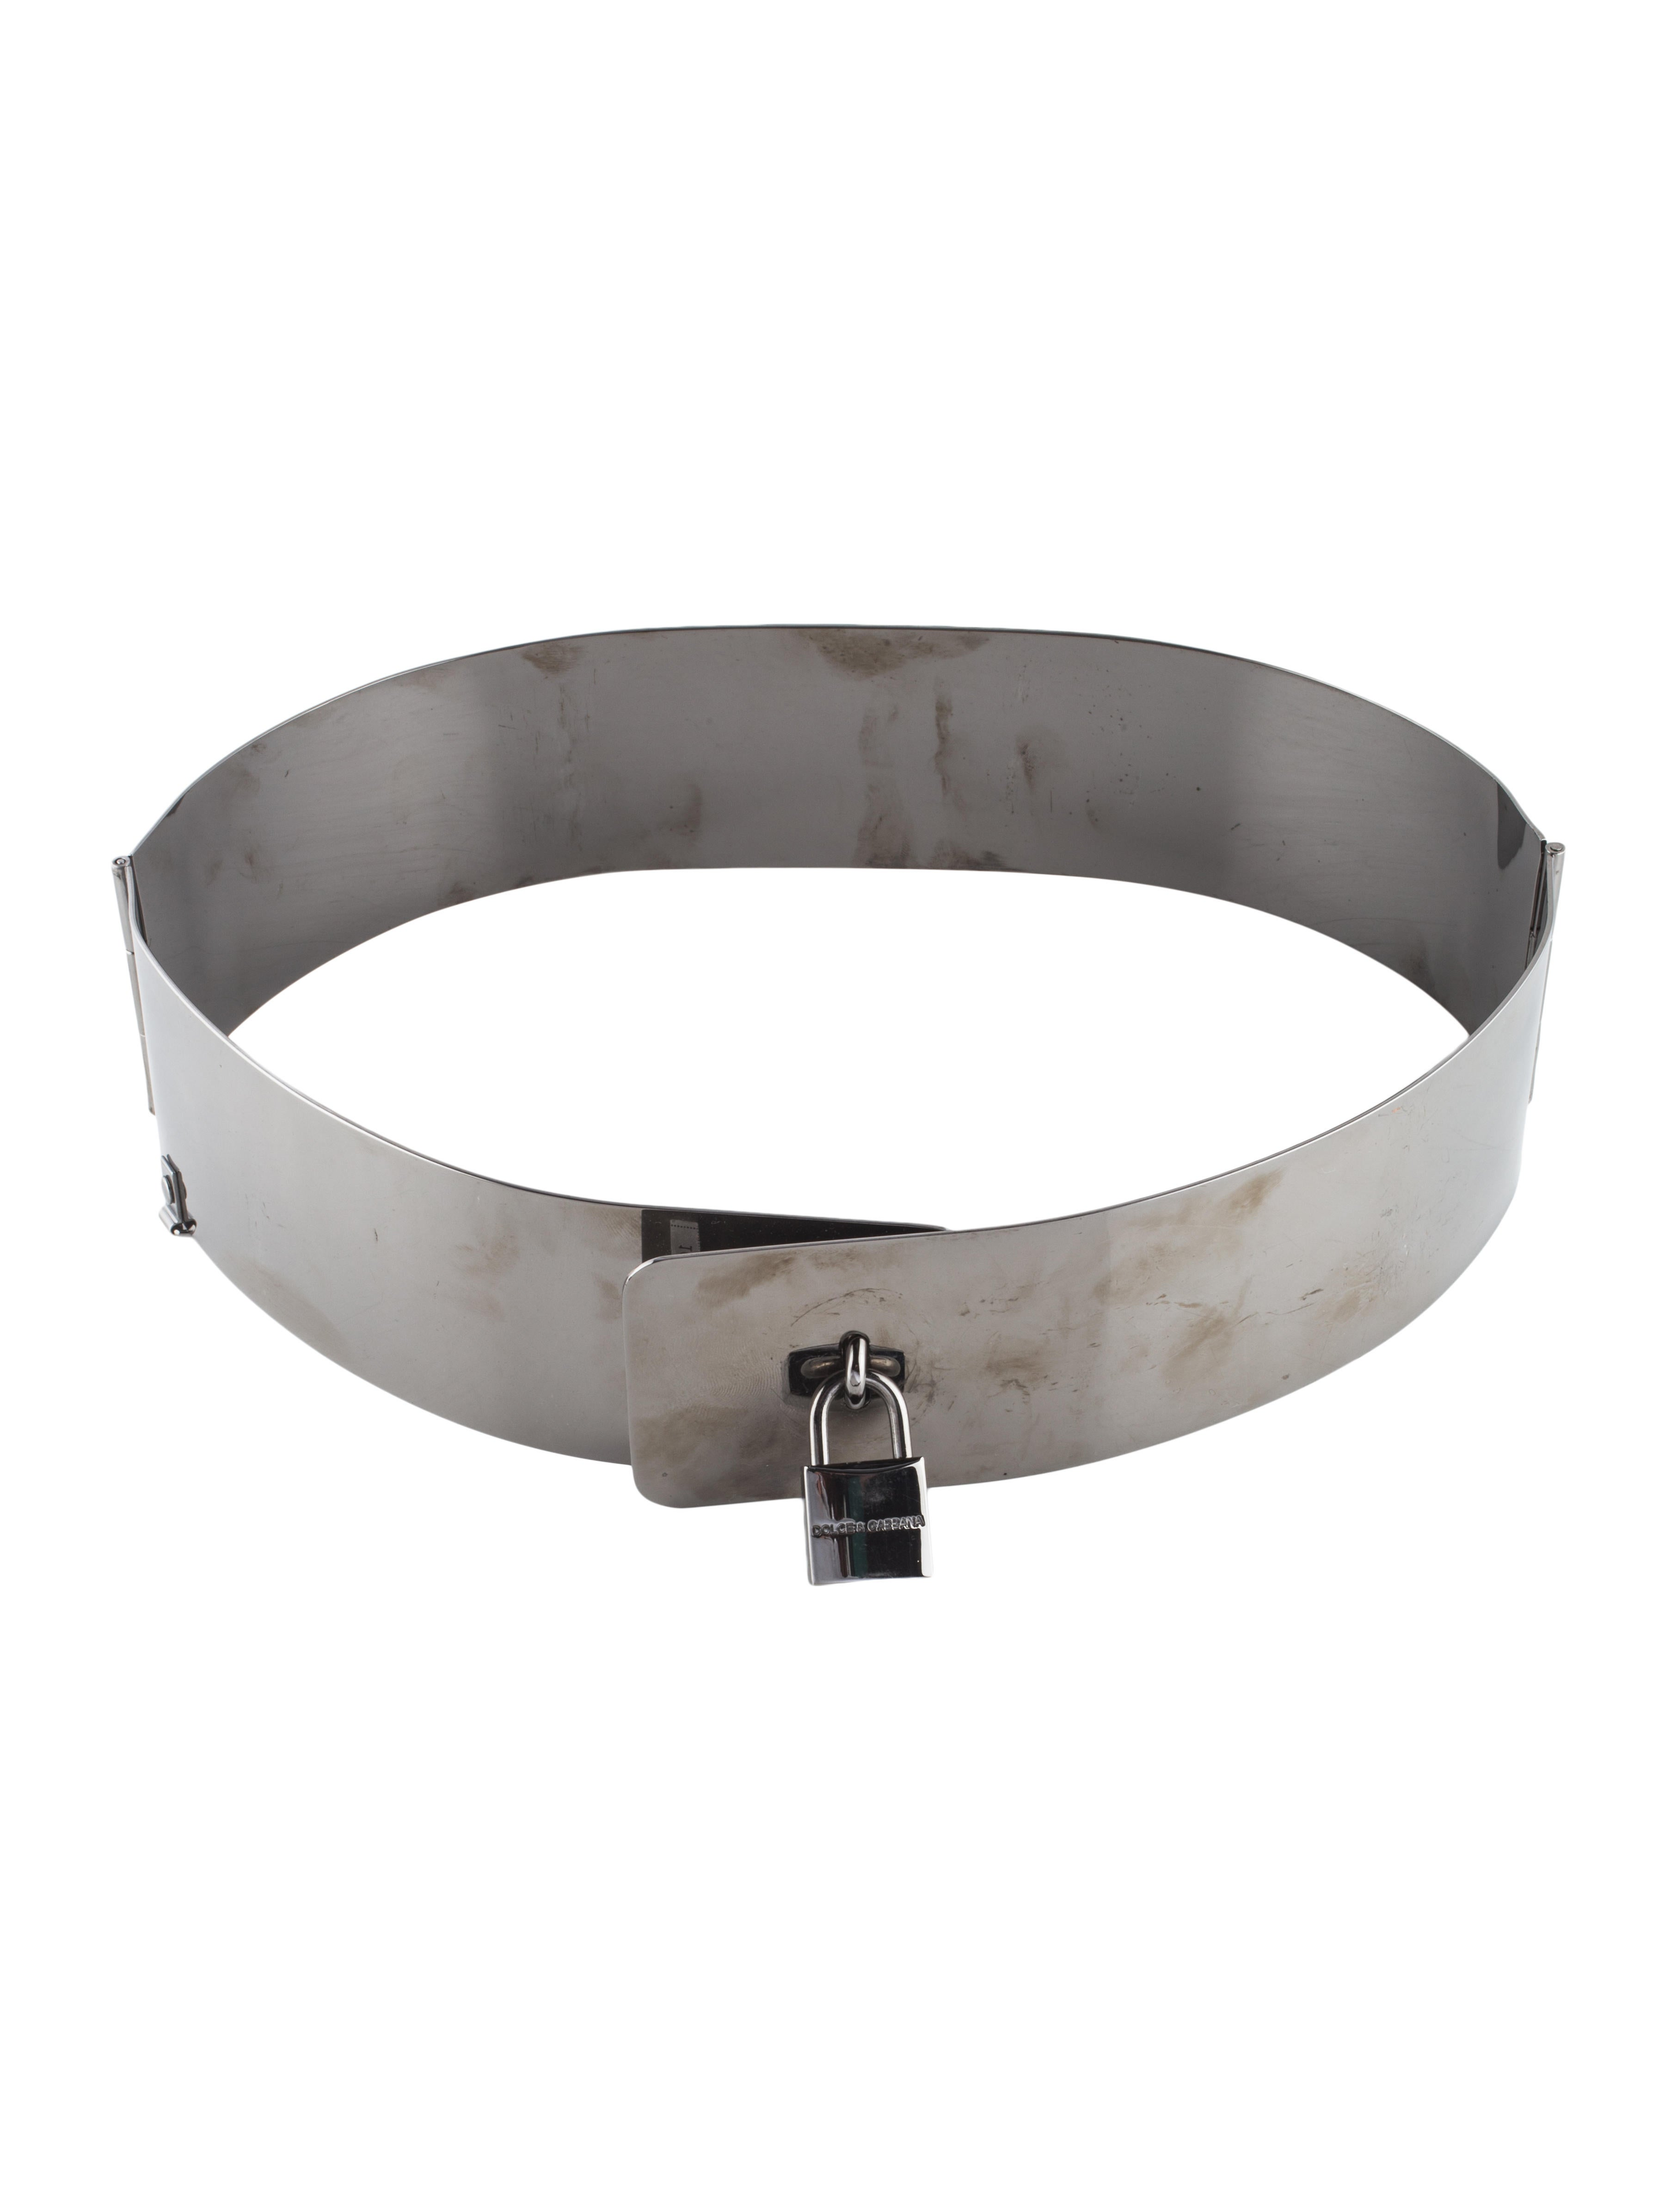 Find great deals on eBay for wide metal belt. Shop with confidence.